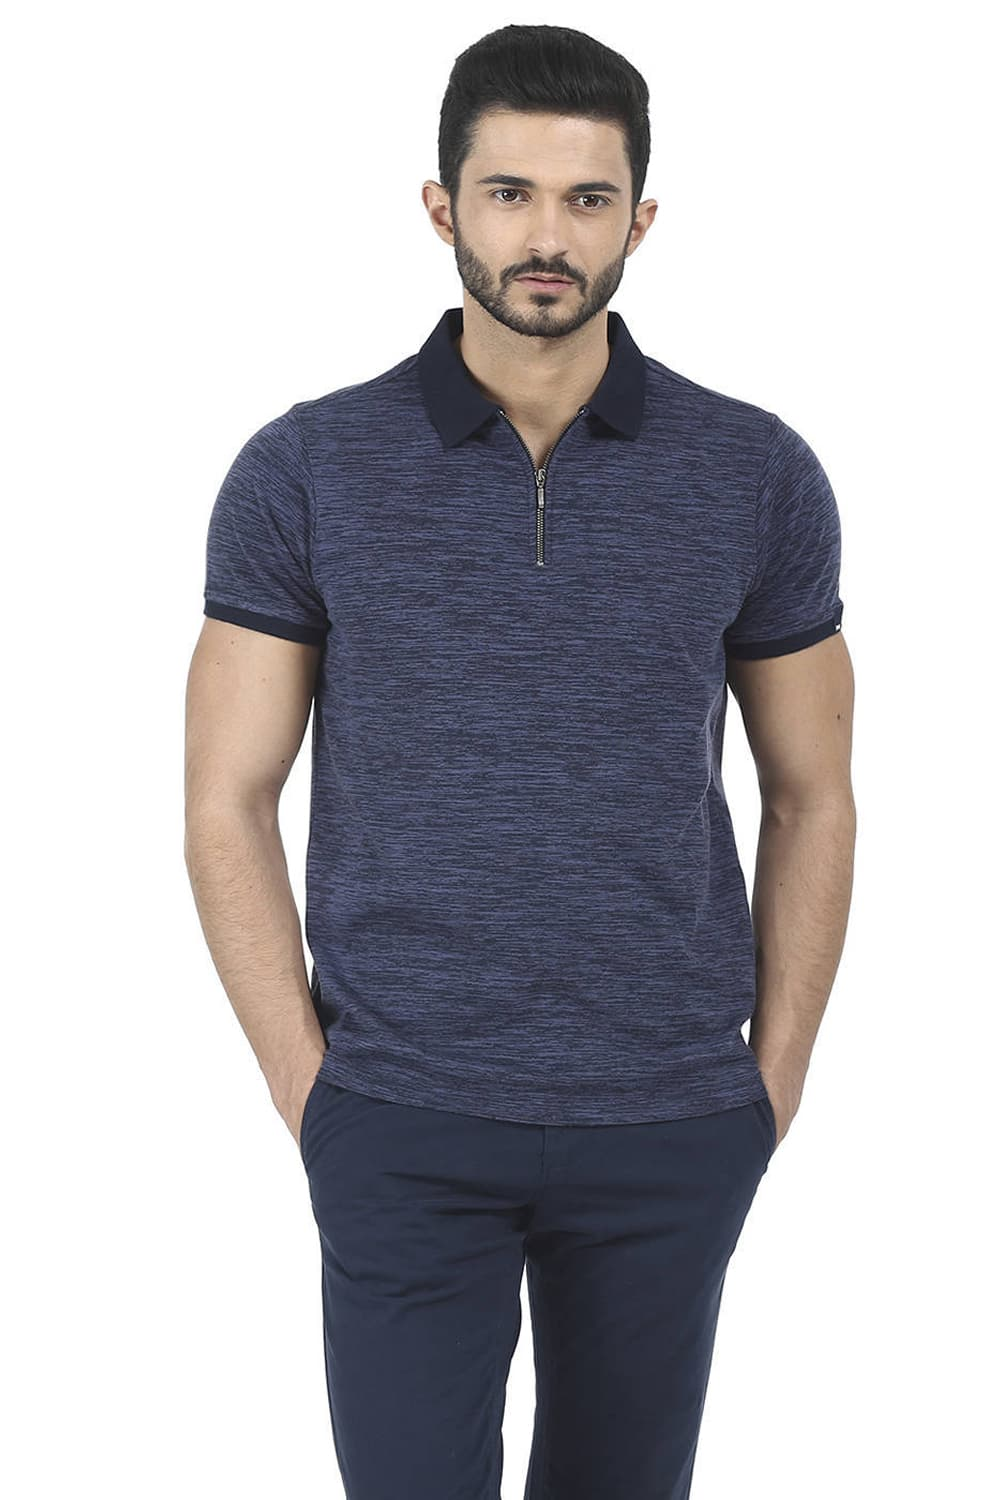 57cbb240 Basics Muscle Fit Starry Navy Polo T Shirt-16bts35426